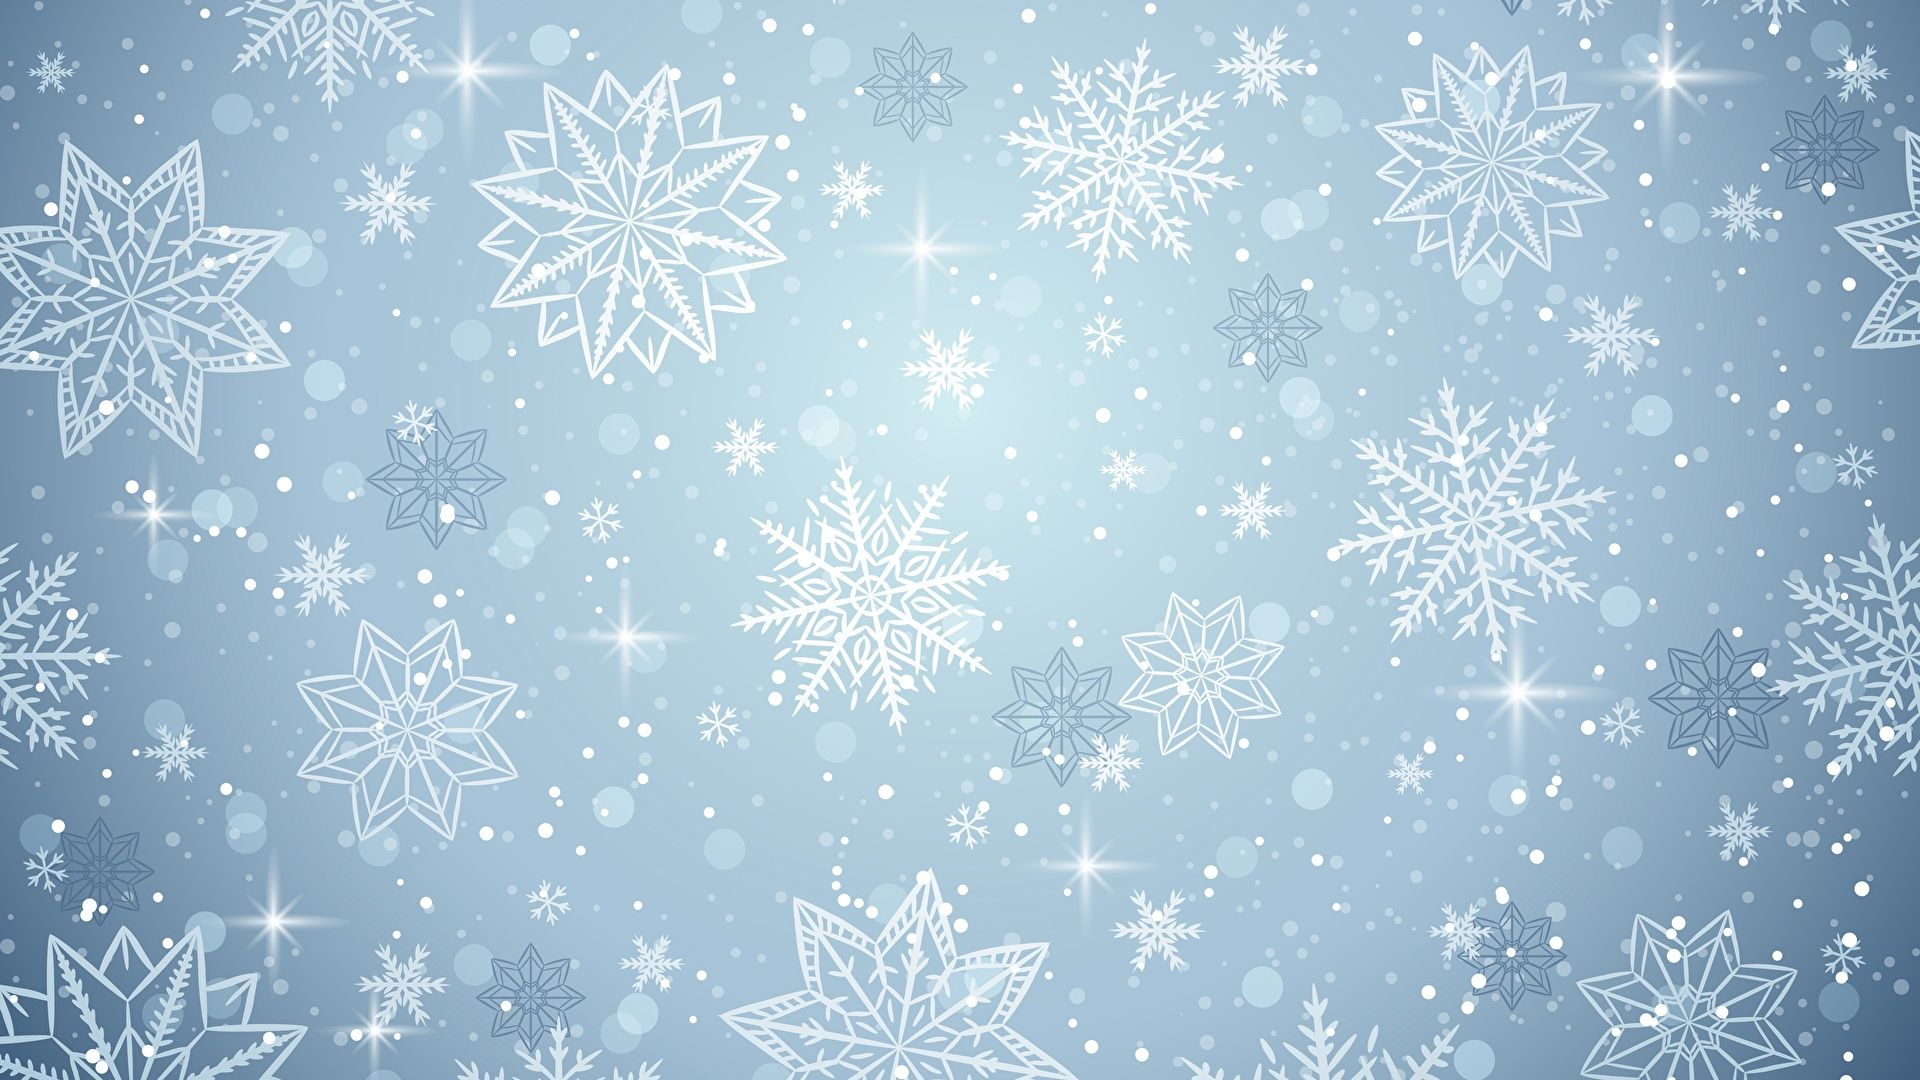 New Year With Snowflakes vertical wallpaper hd